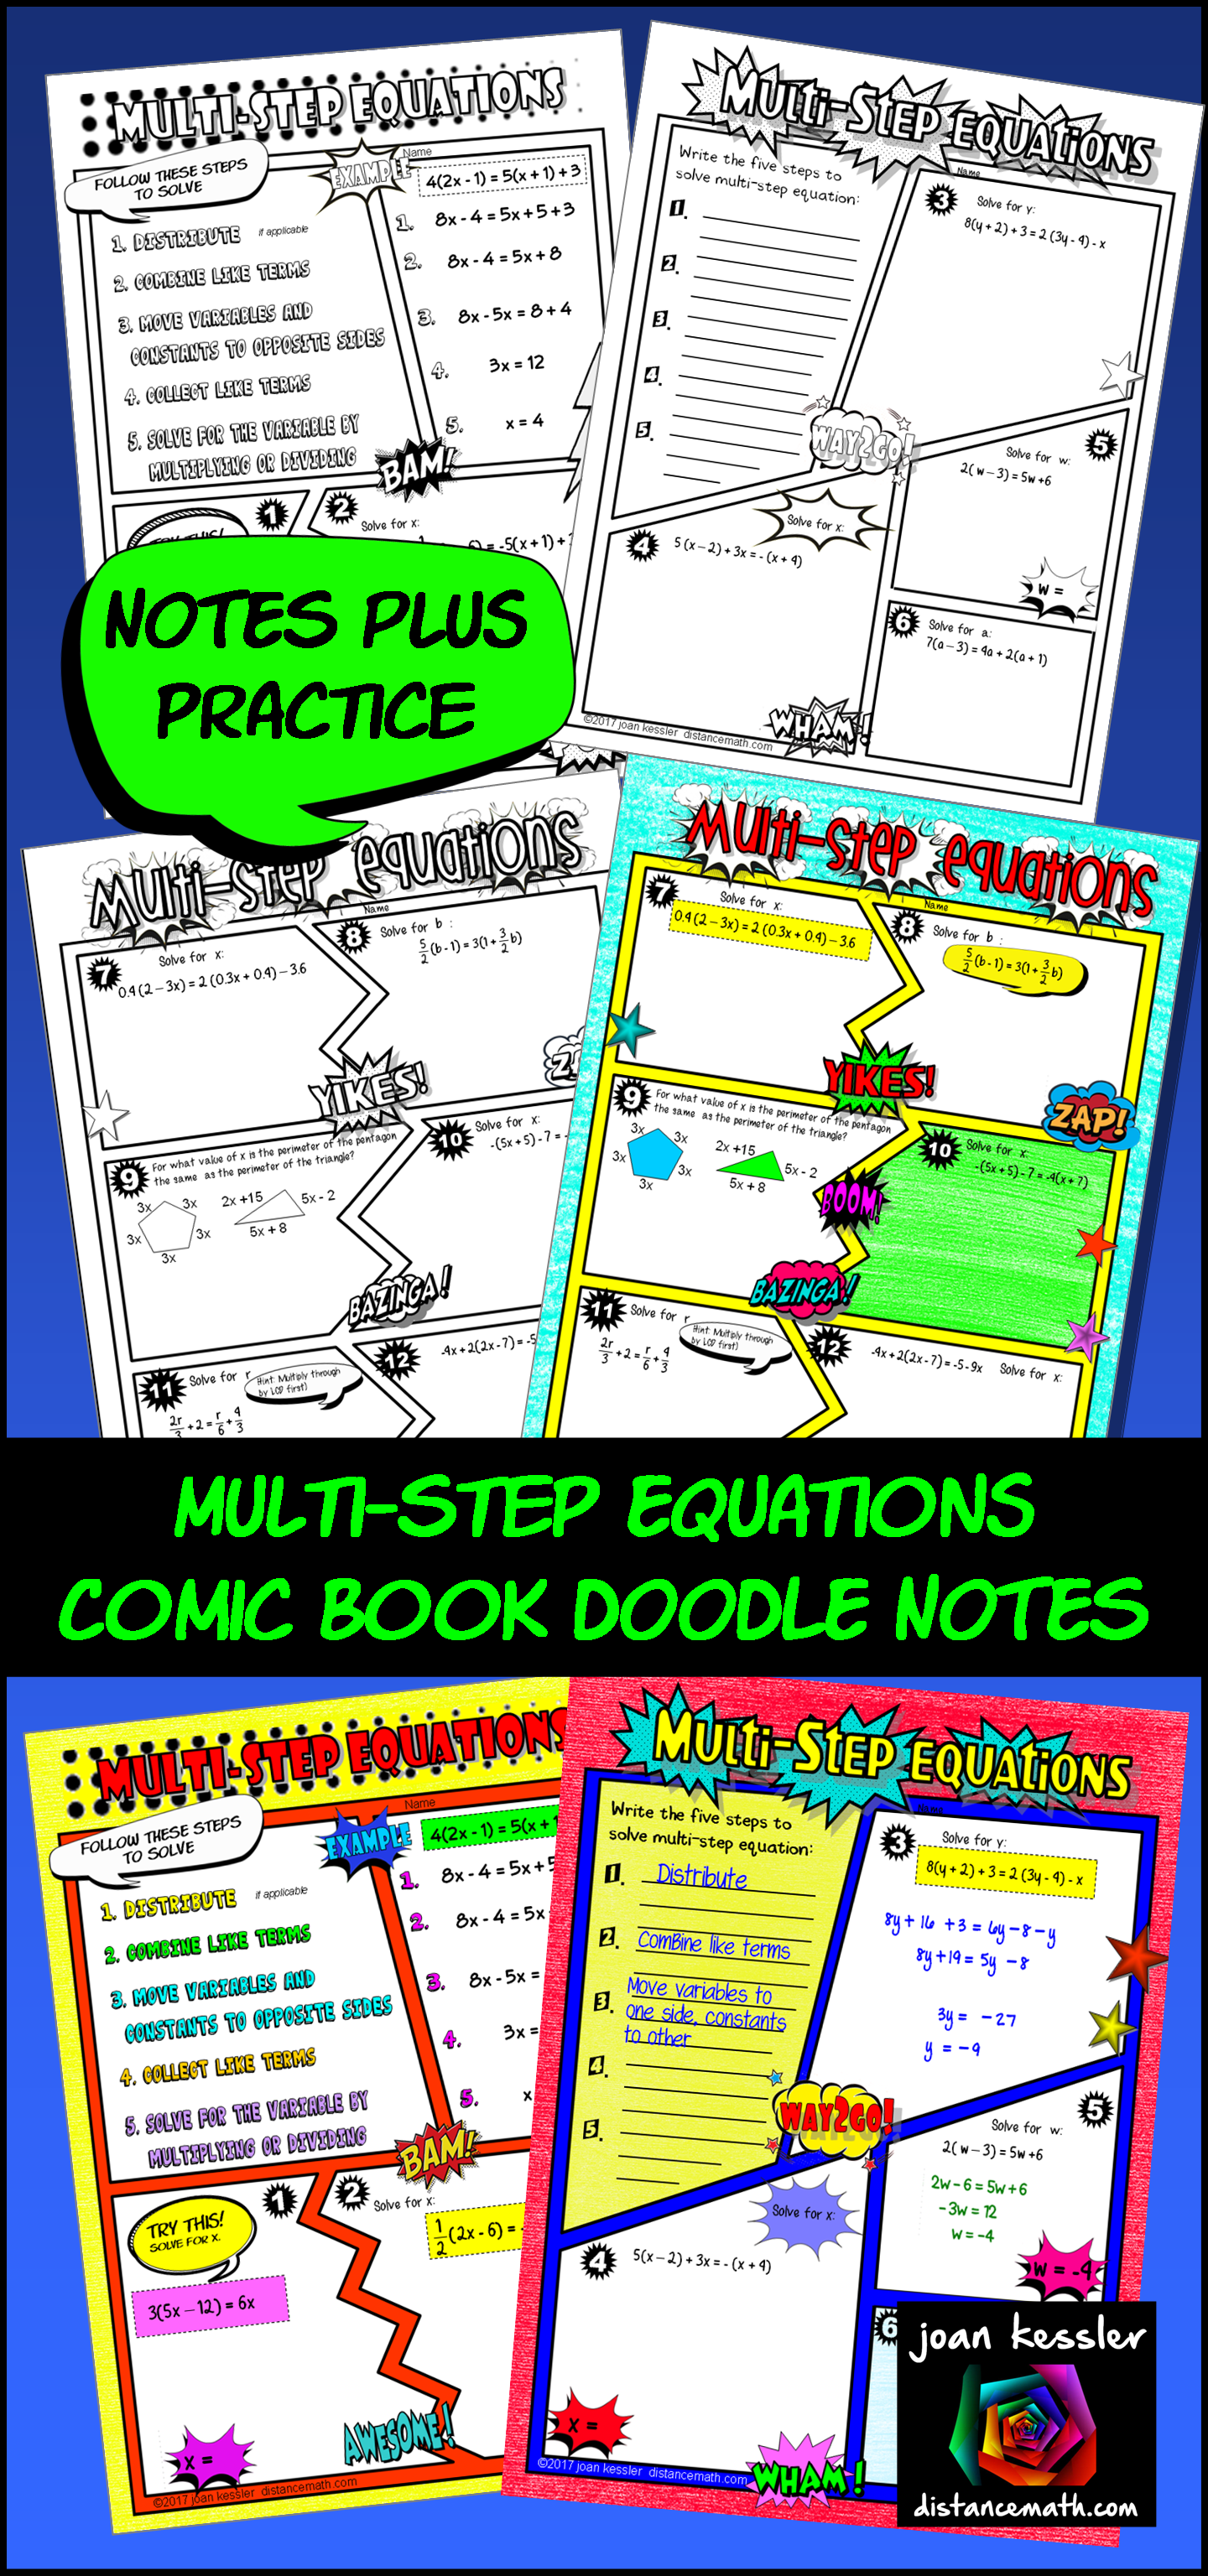 Multi Step Equations Comic Book Doodle Notes And Practice